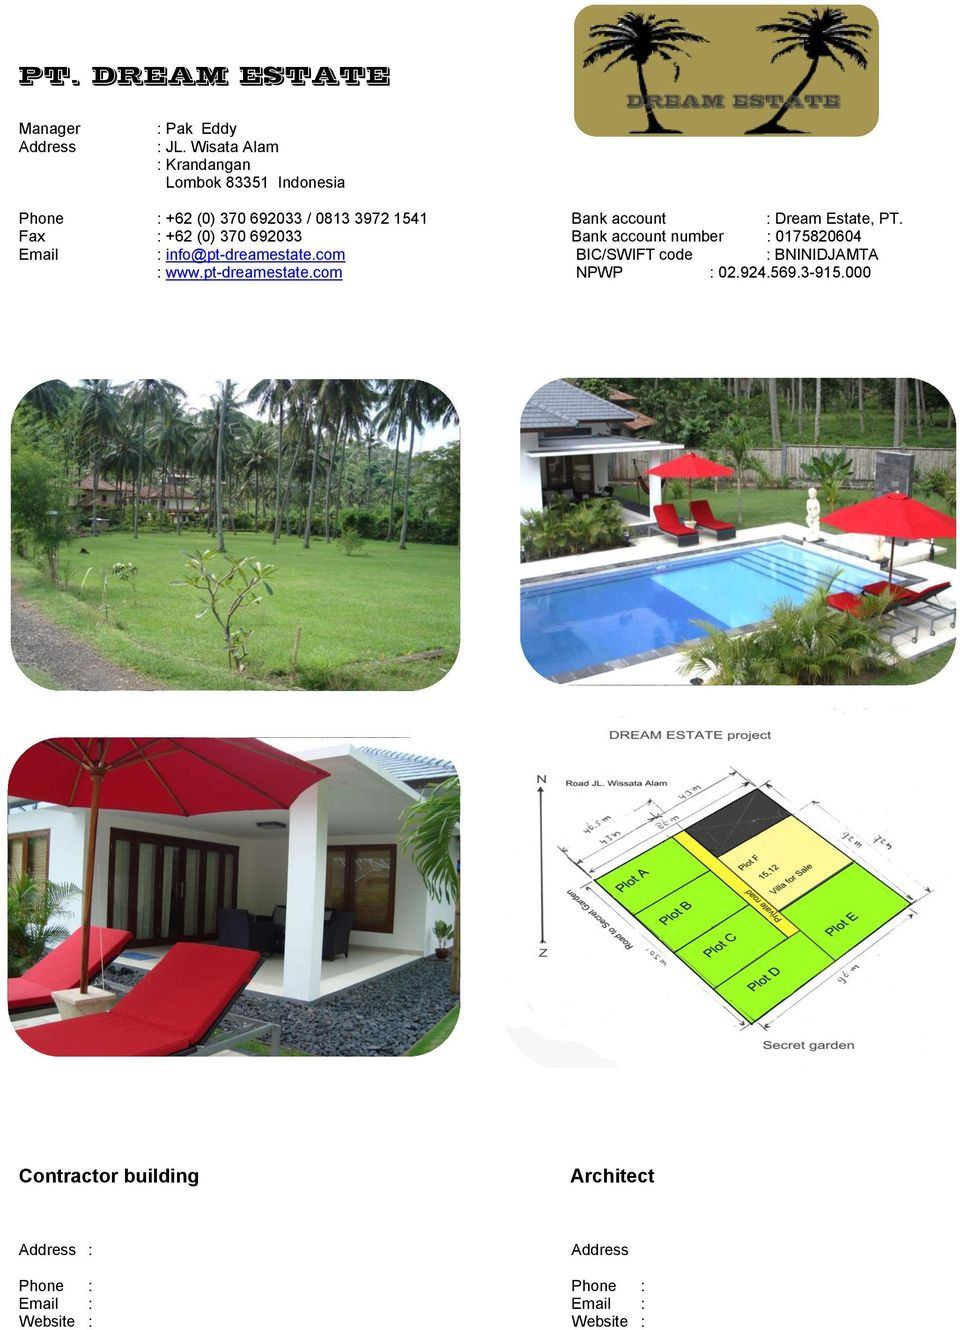 Dream Estate, PT. Fax : +62 (0) 370 692033 Bank account number : 0175820604 Email : info@pt-dreamestate.